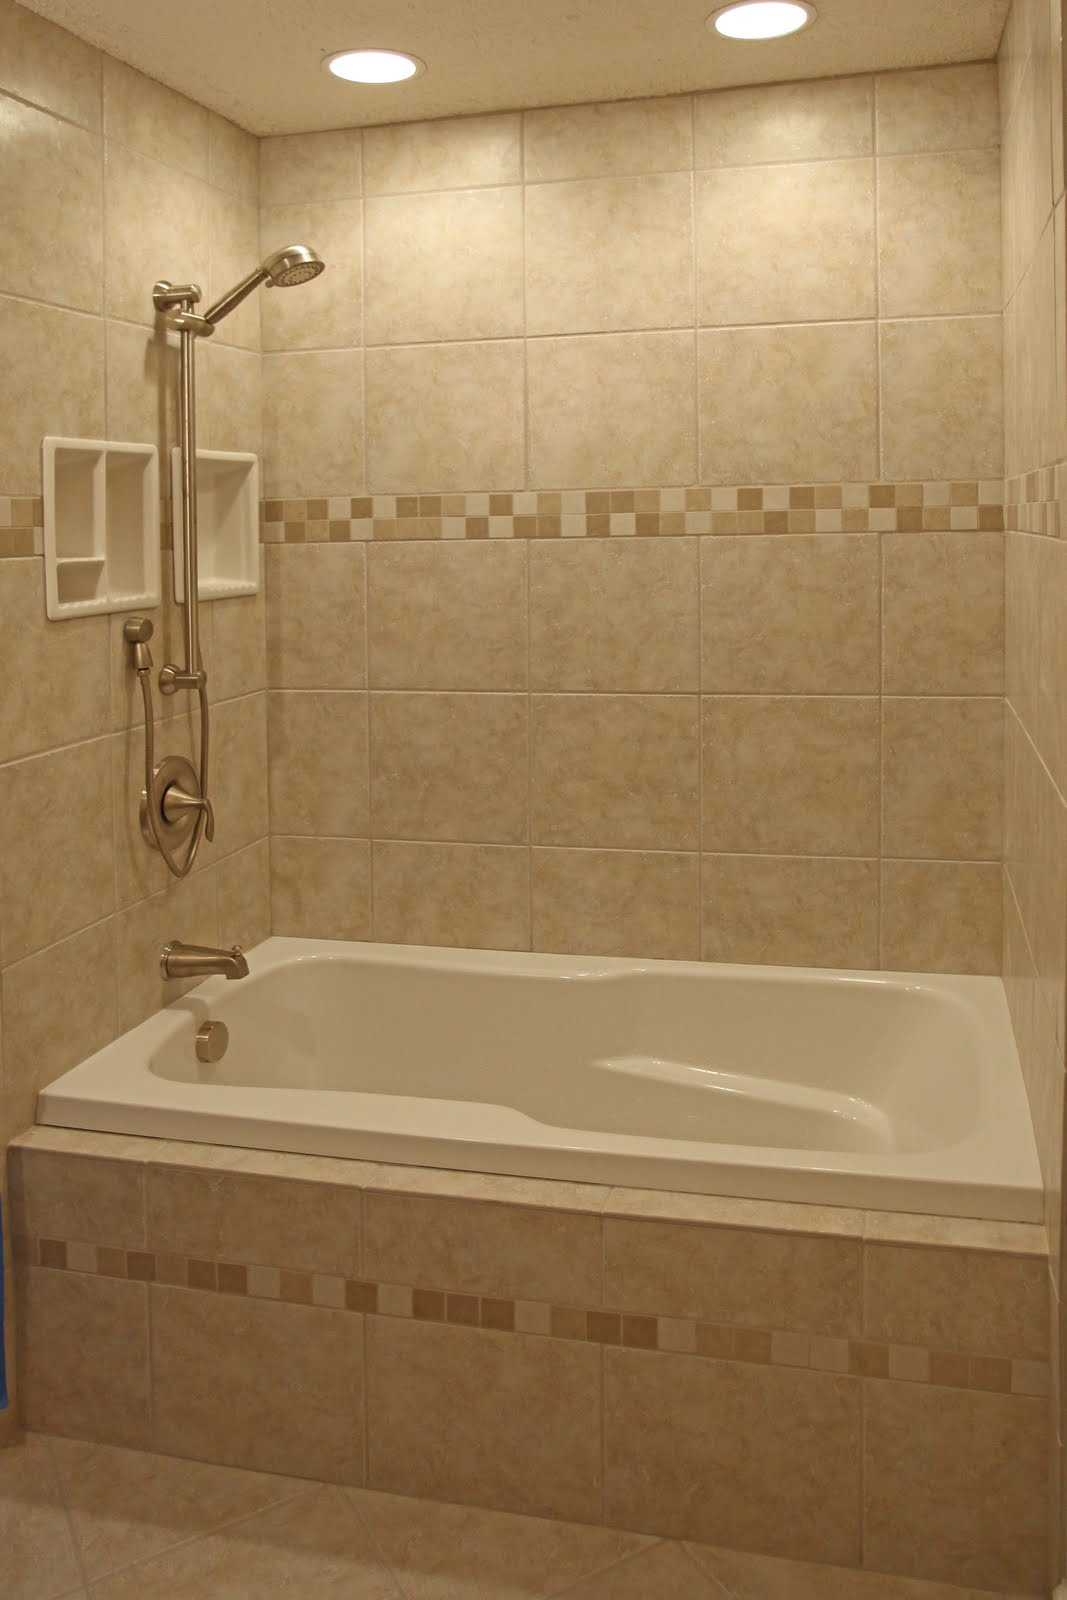 Bathroom remodeling design ideas tile shower niches for Tile for small bathroom